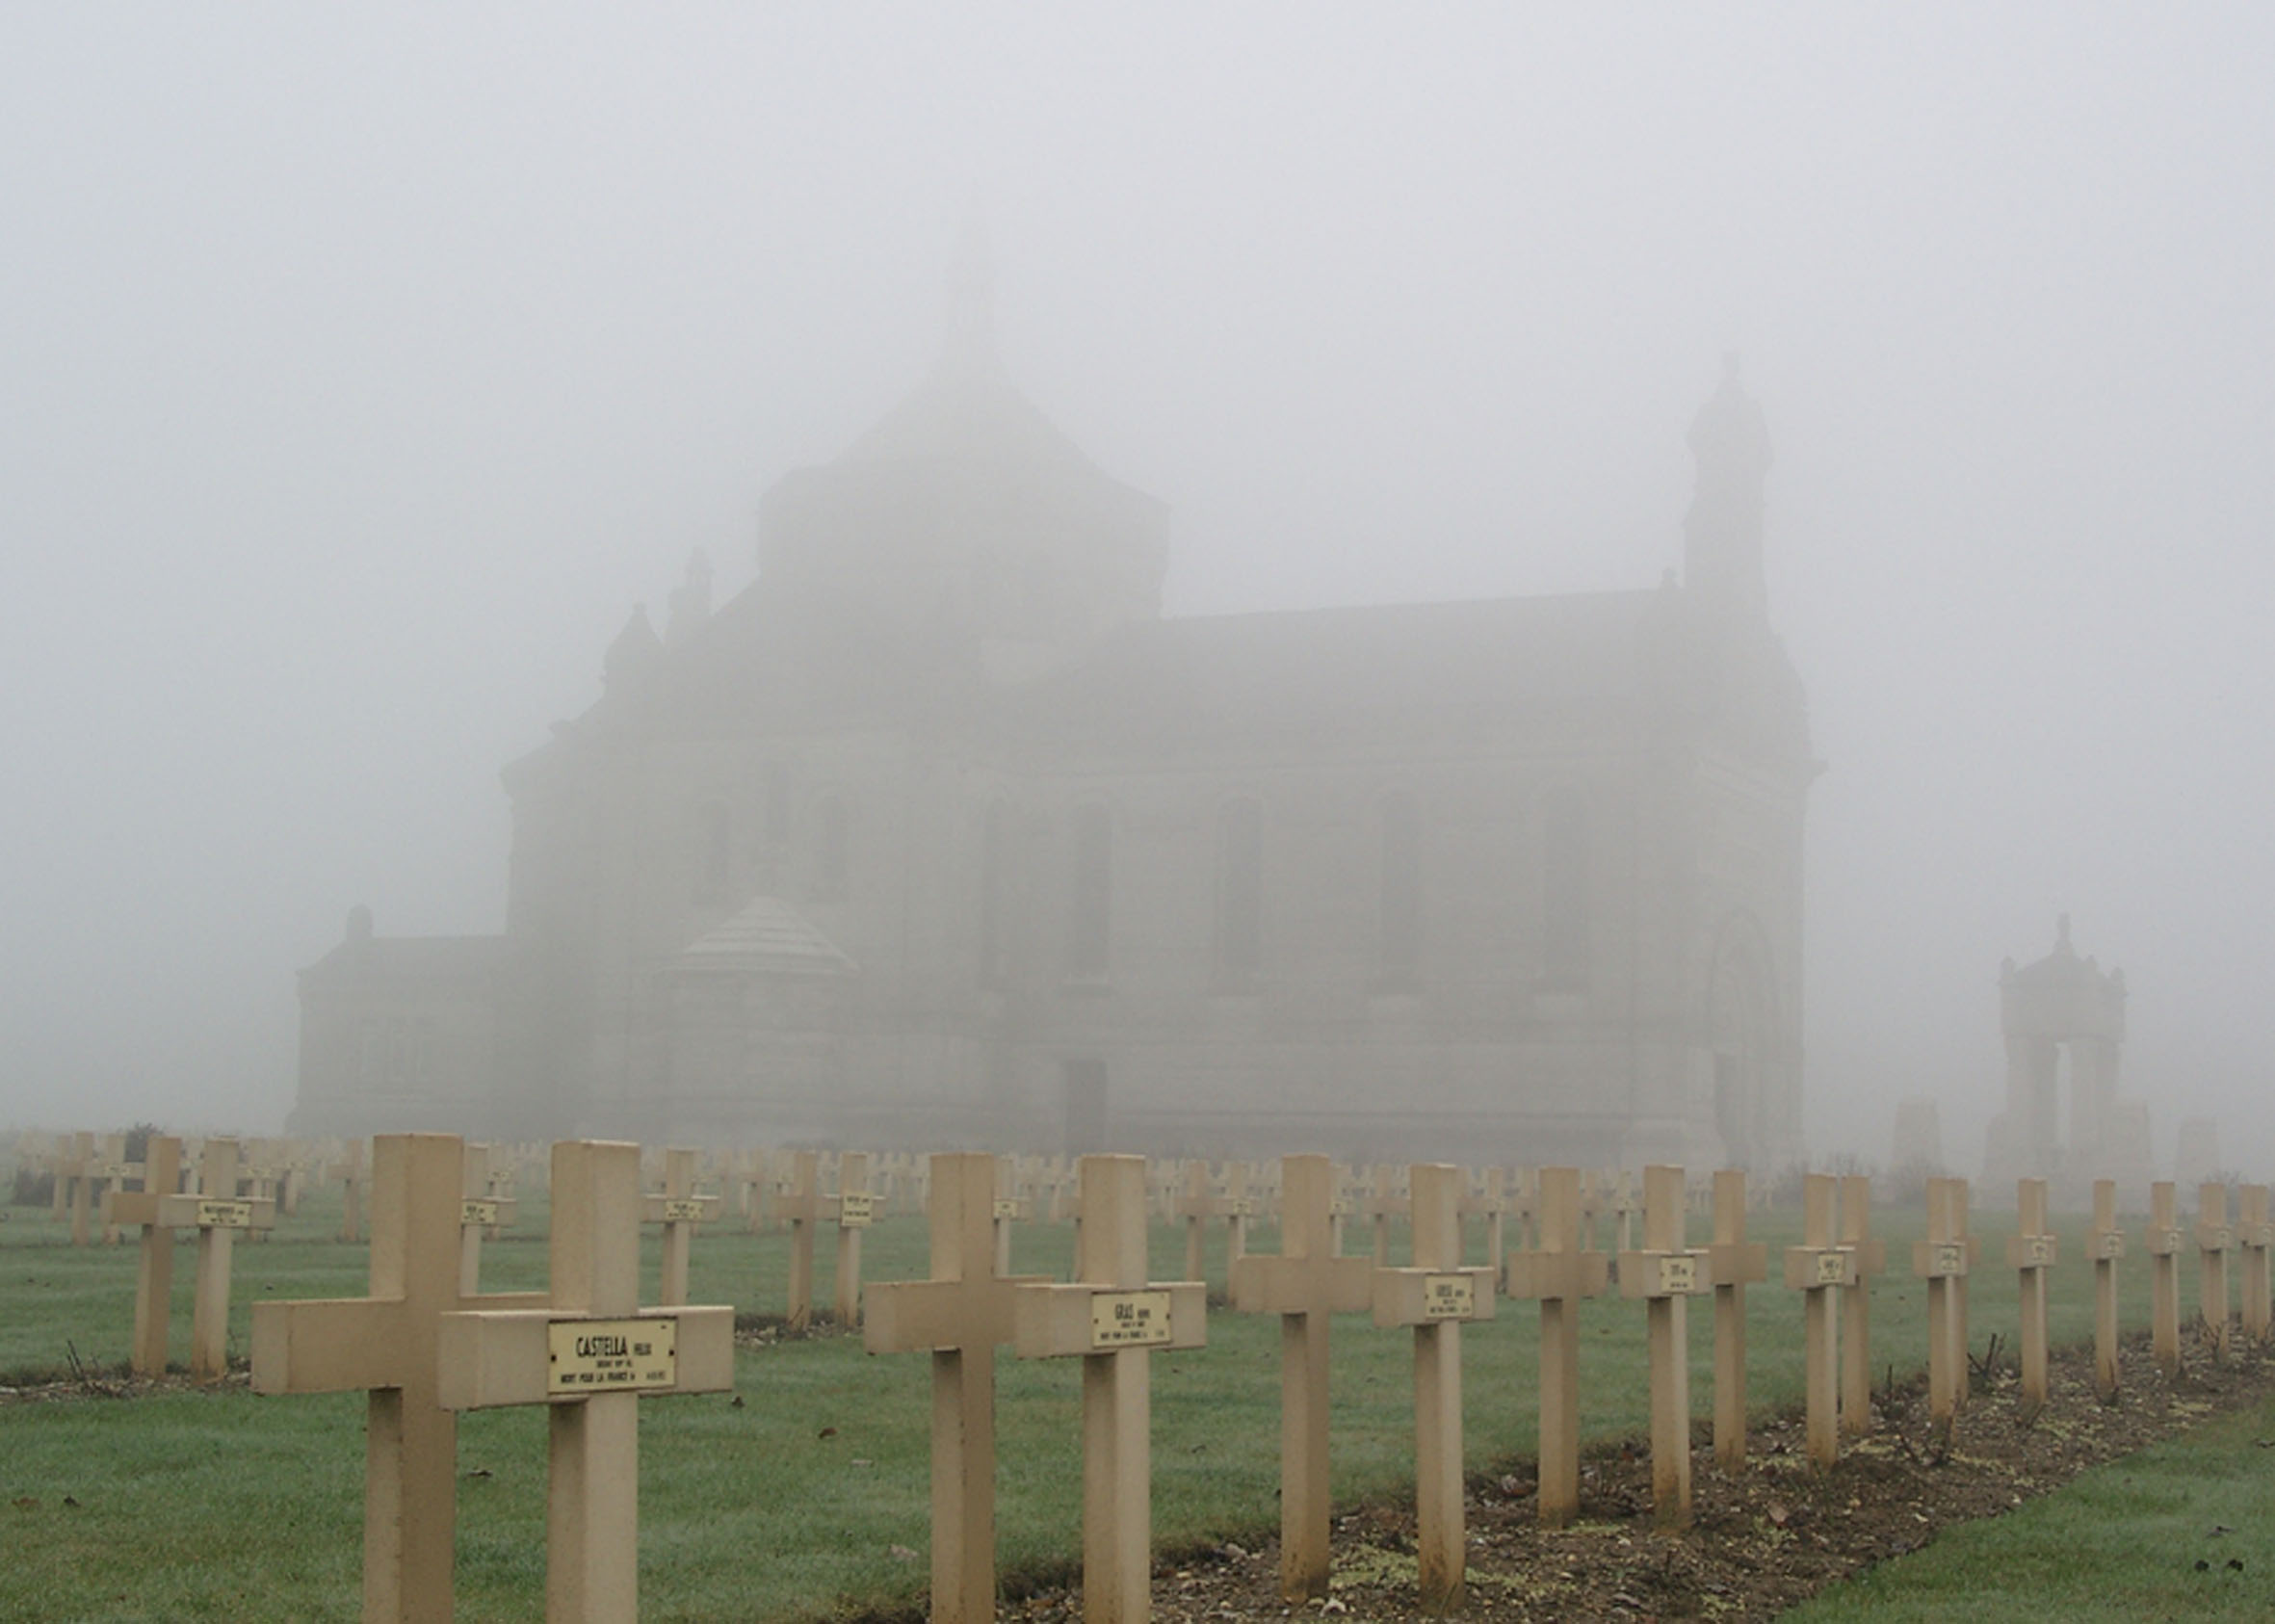 Basilica on top of the Lorette Hill in the Middle of the French Military Cemetery